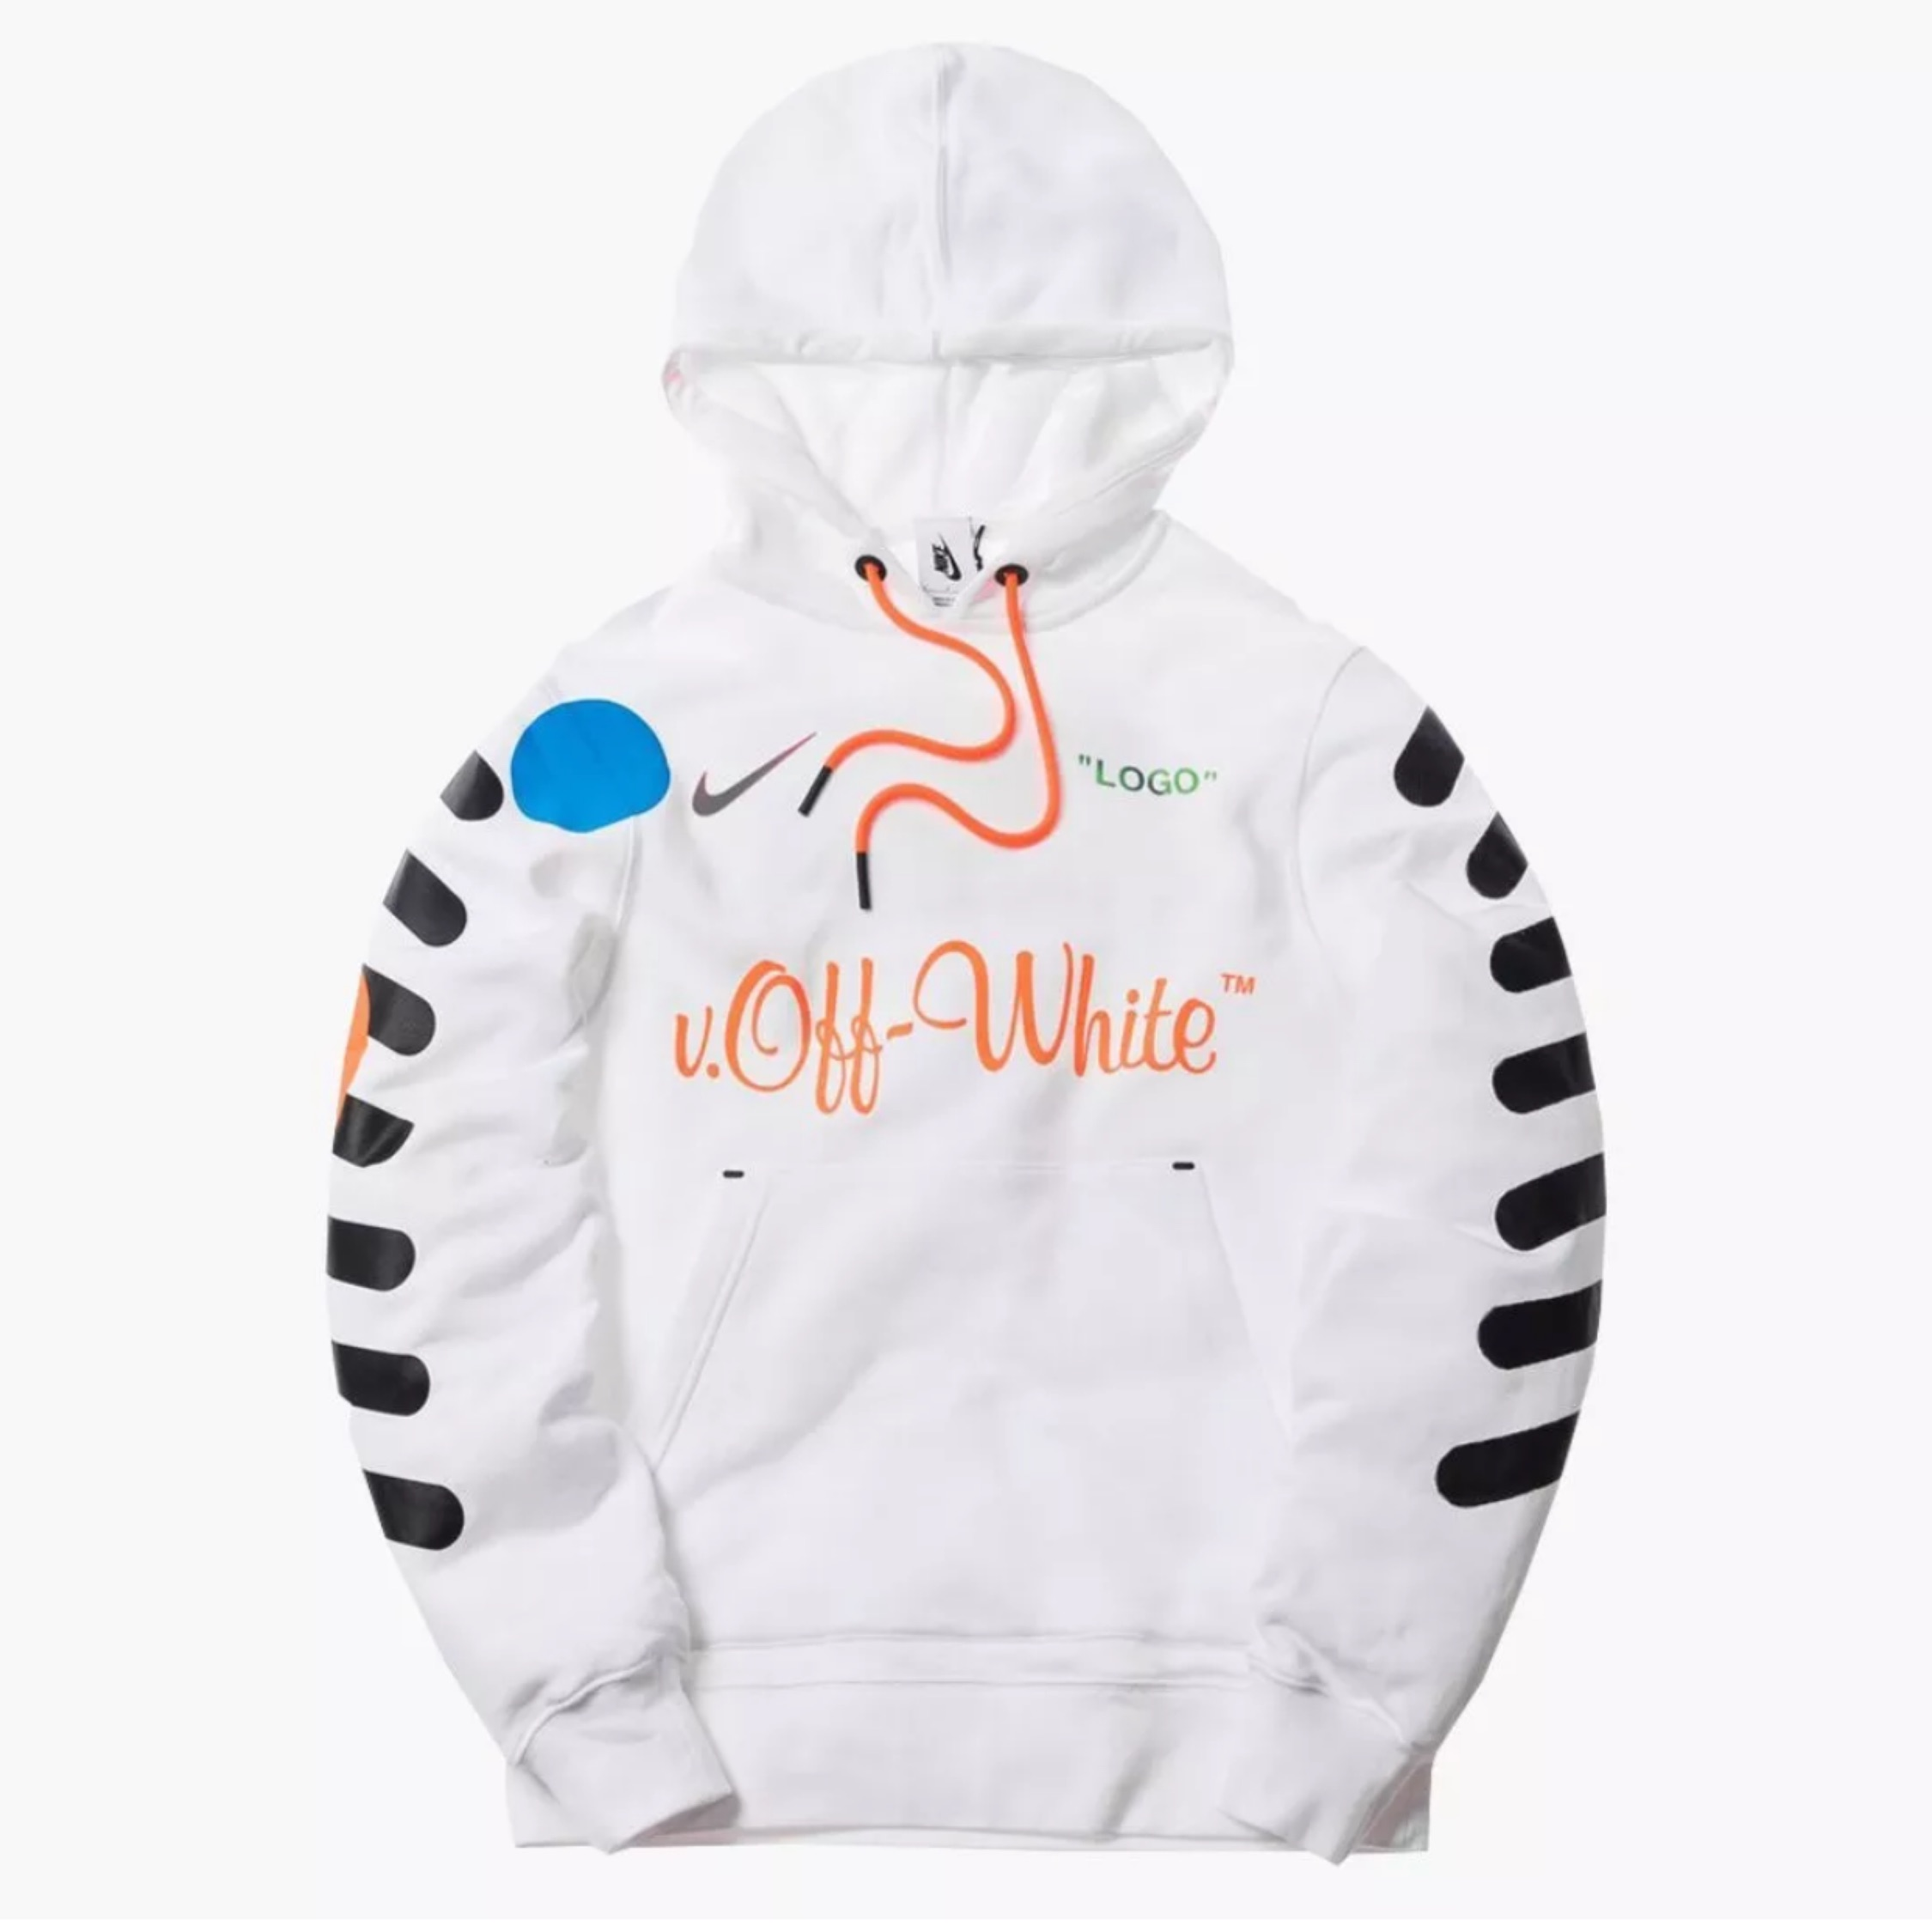 finest selection 35e2f 6ede7 Nike Lab X Off White Football Hooded Pullover